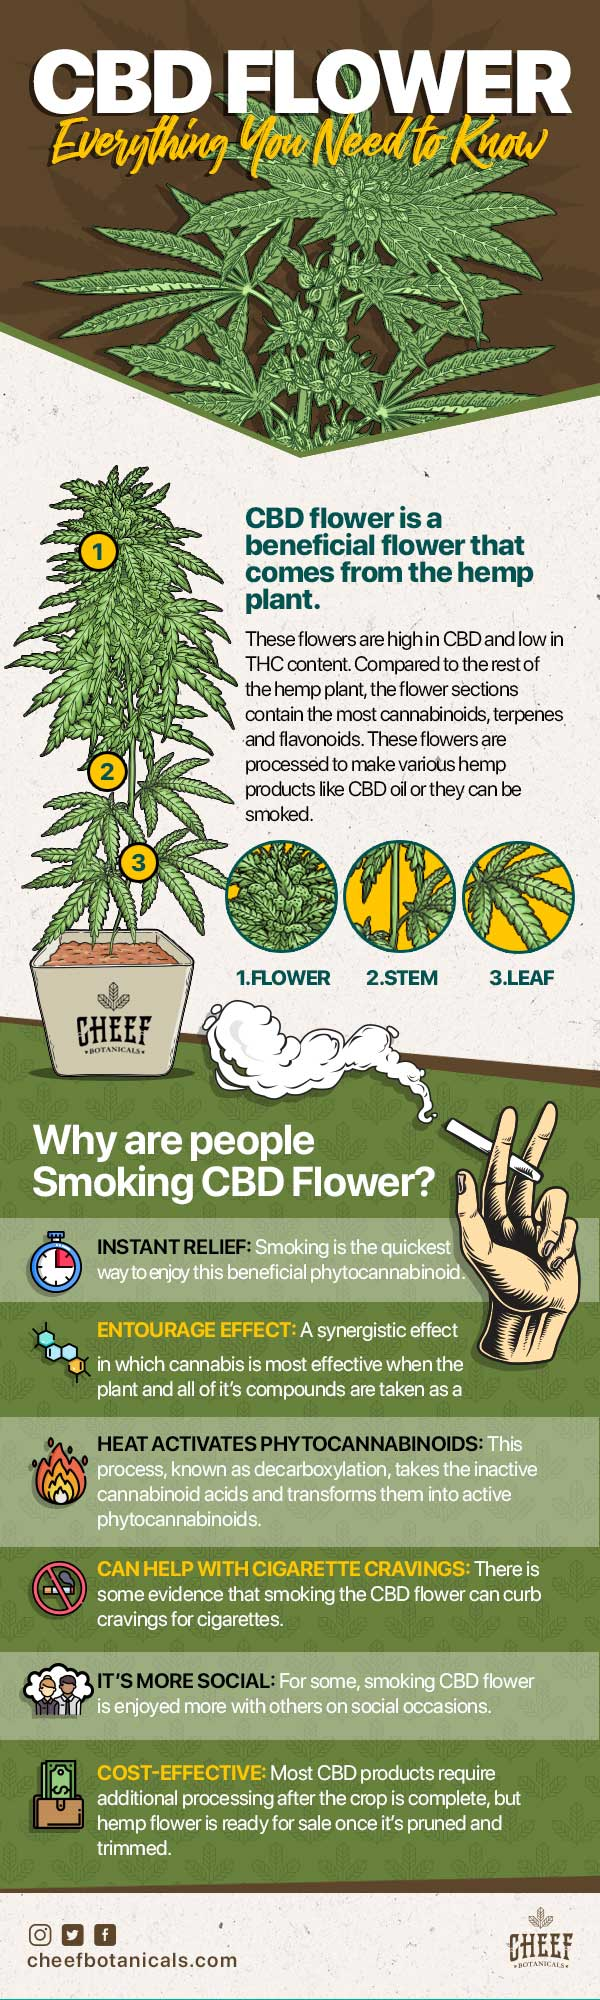 CBD flower info why are people smoking it